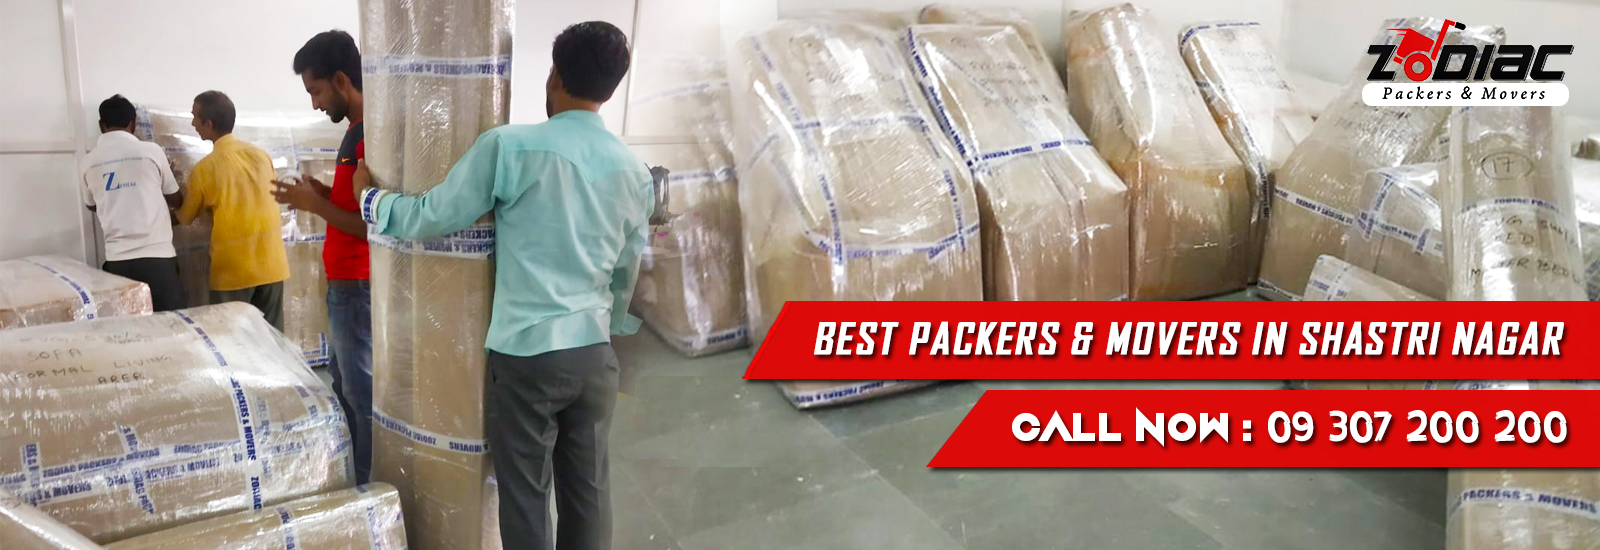 Packers and Movers in Shastri Nagar